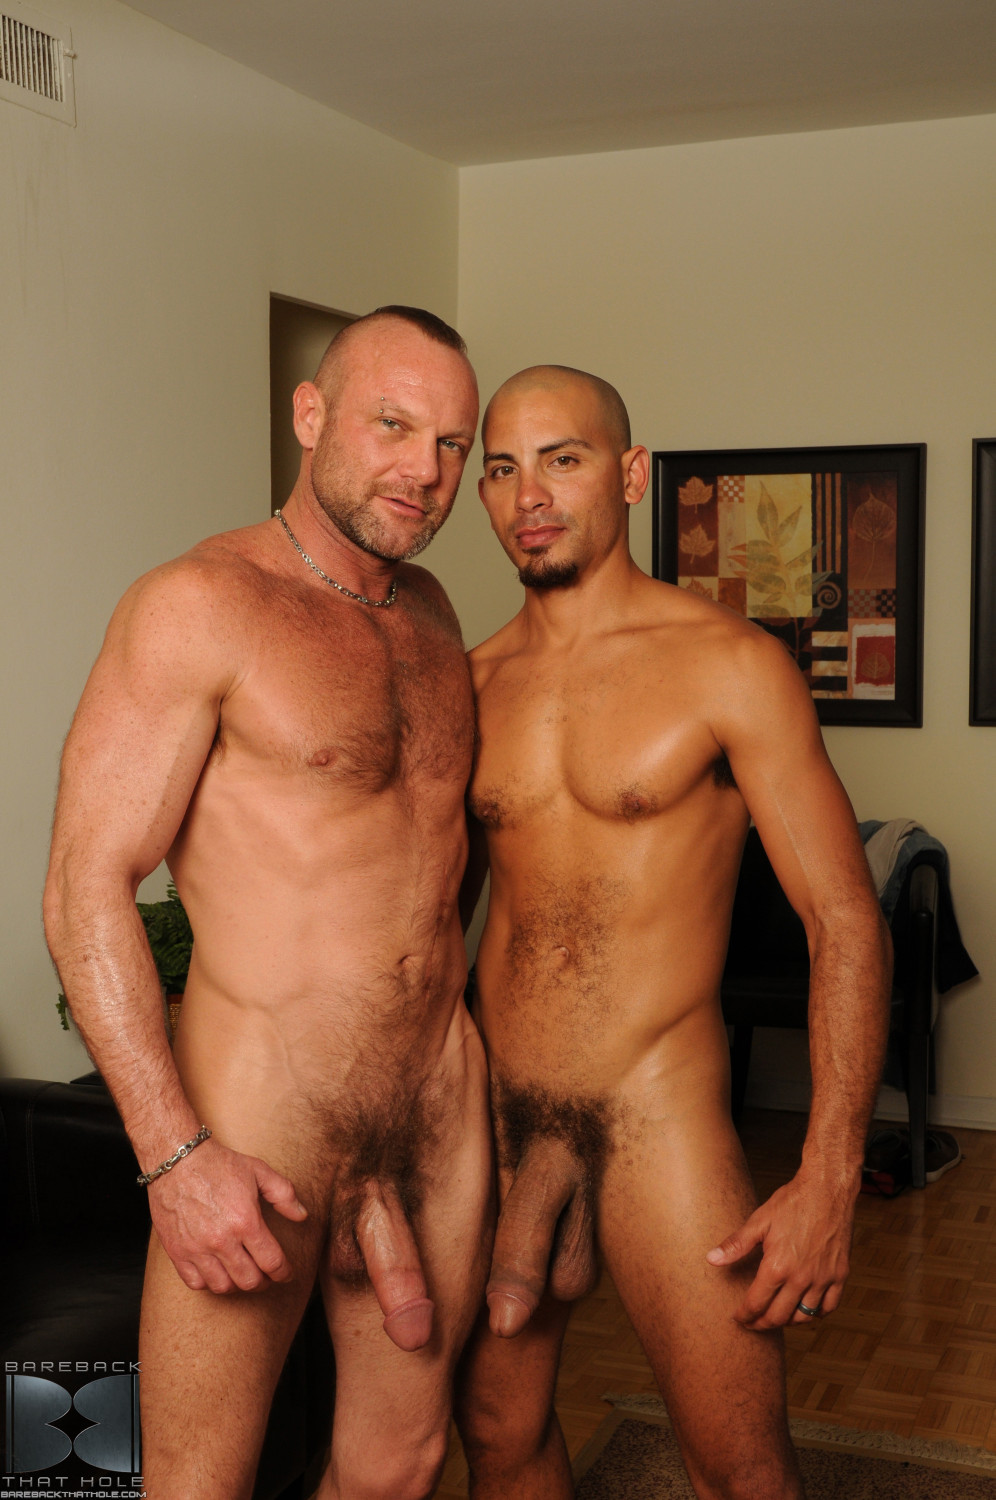 Bareback-That-Hole-Chad-Brock-and-Antonio-Biaggi-01 Bareback That Hole: Chad Brock and Antonio Biaggi